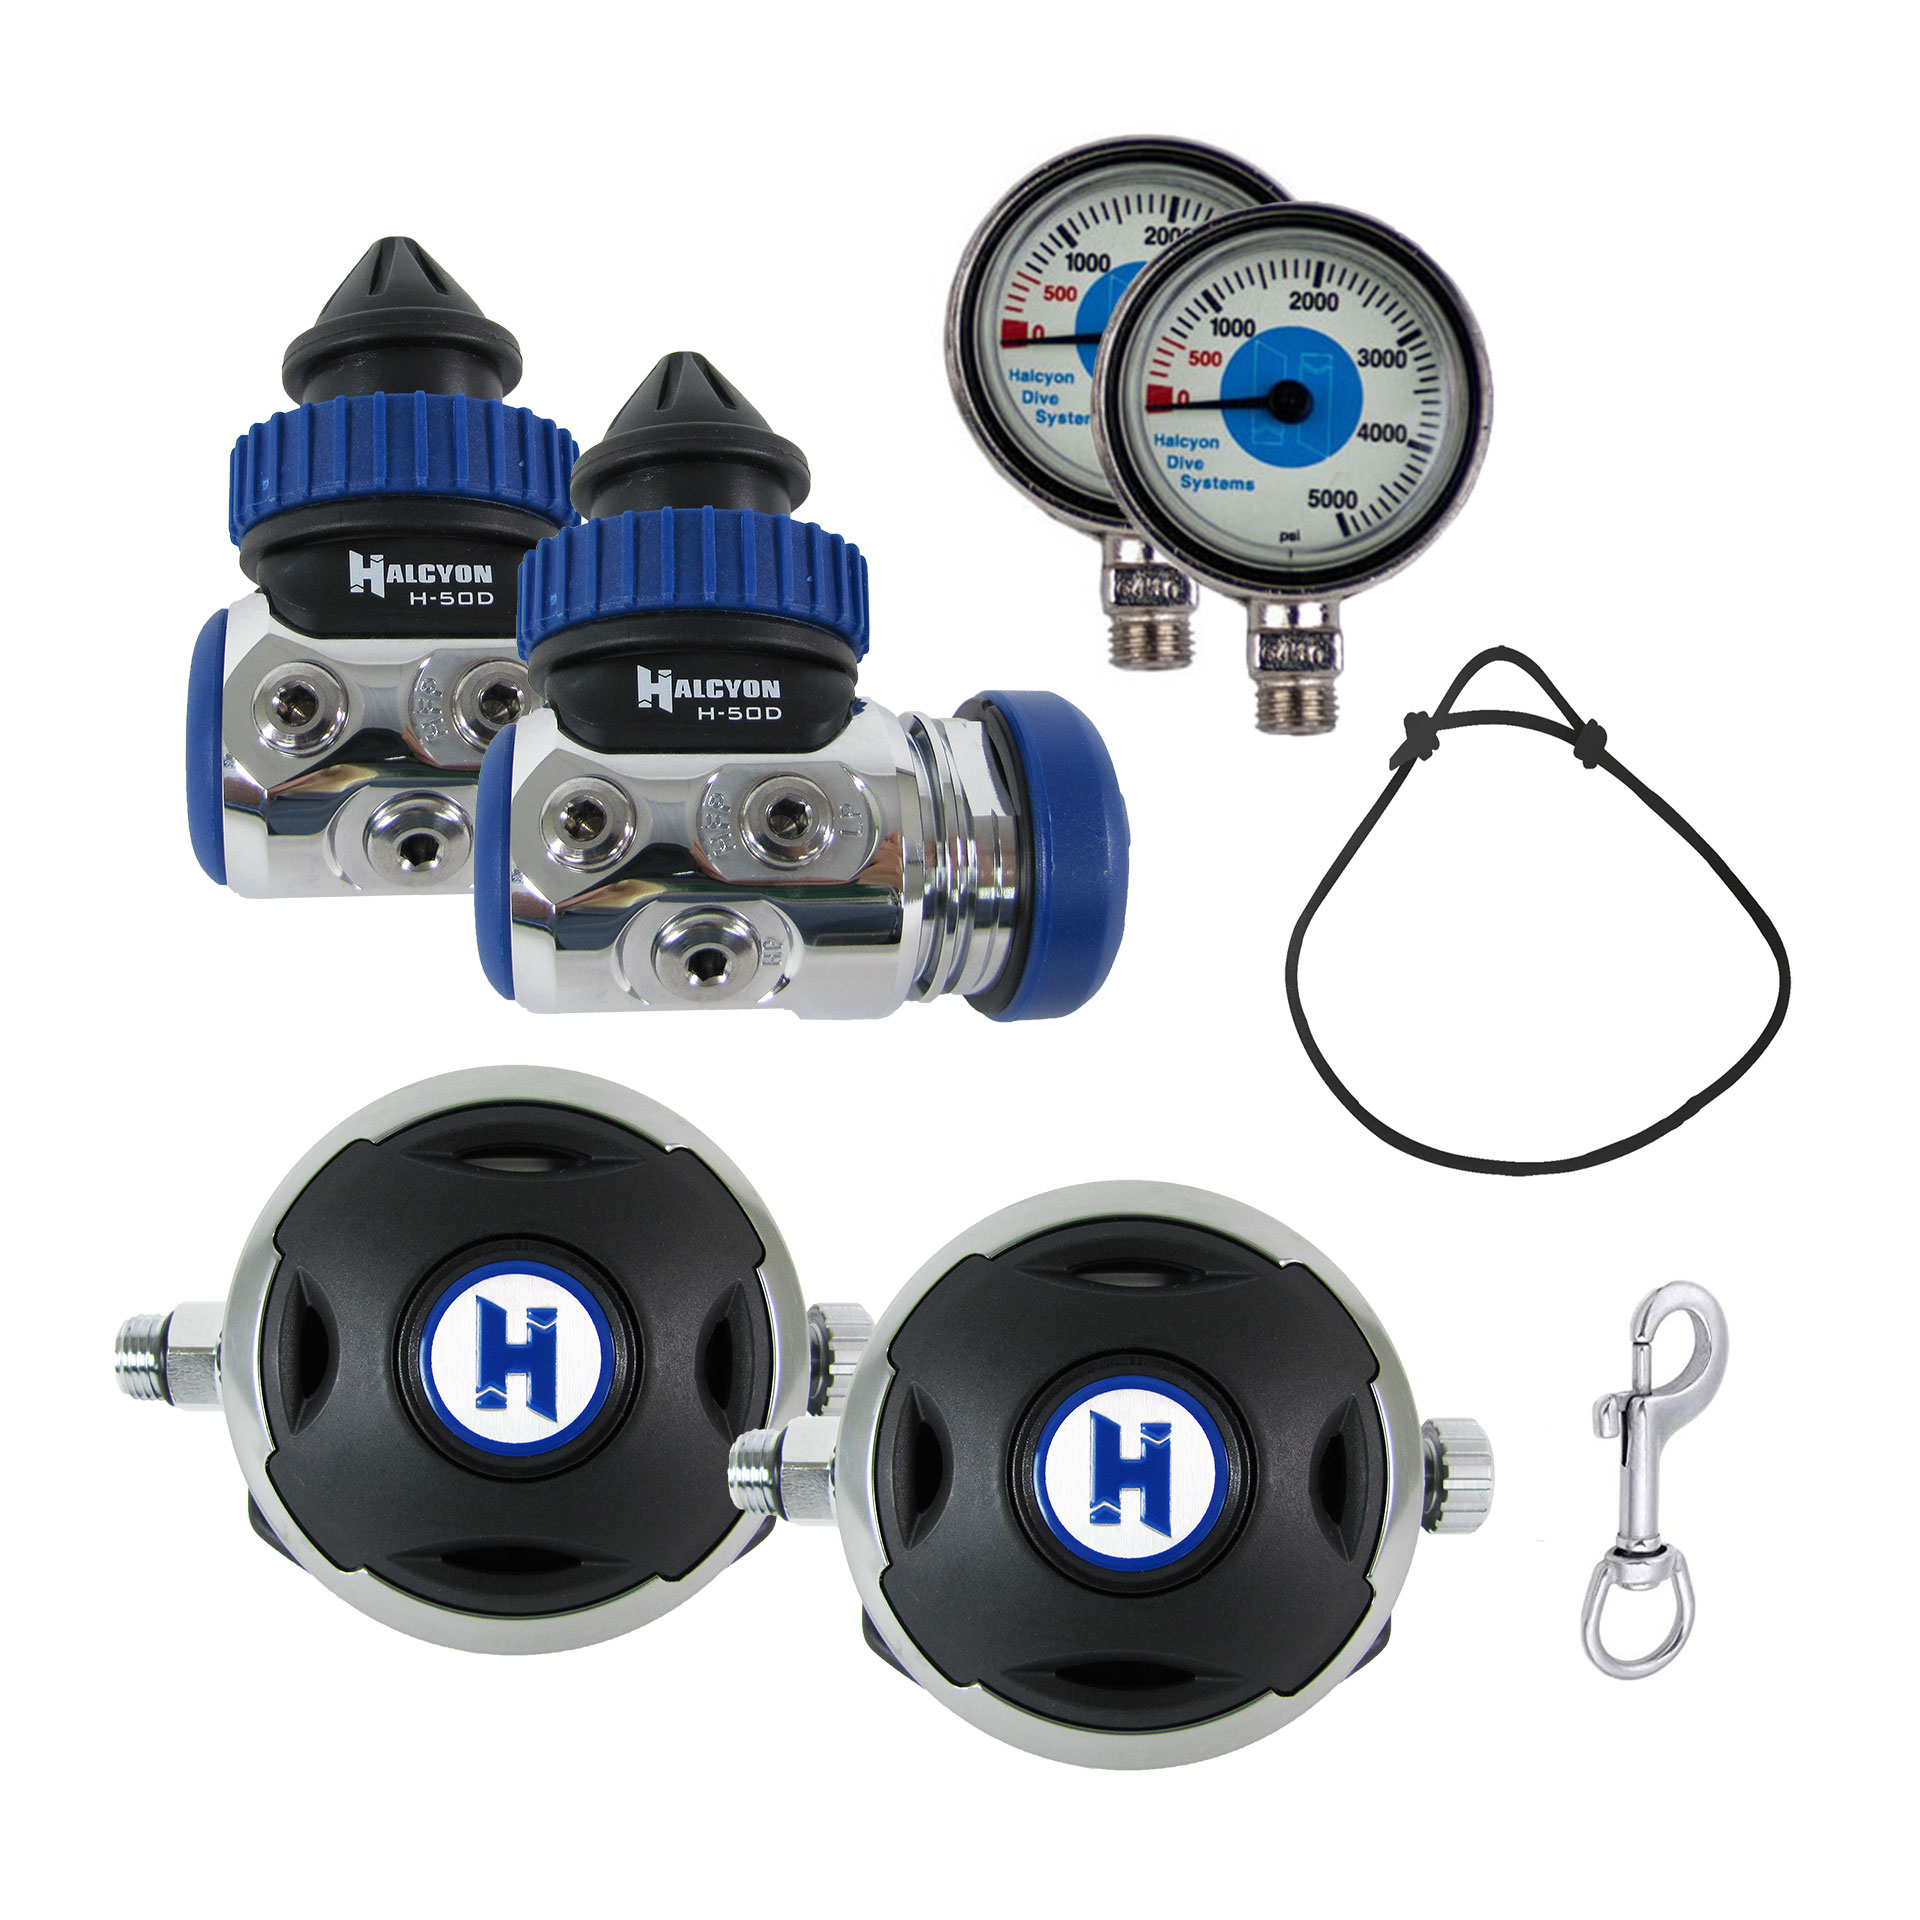 H-50D Sidemount Regulator Package